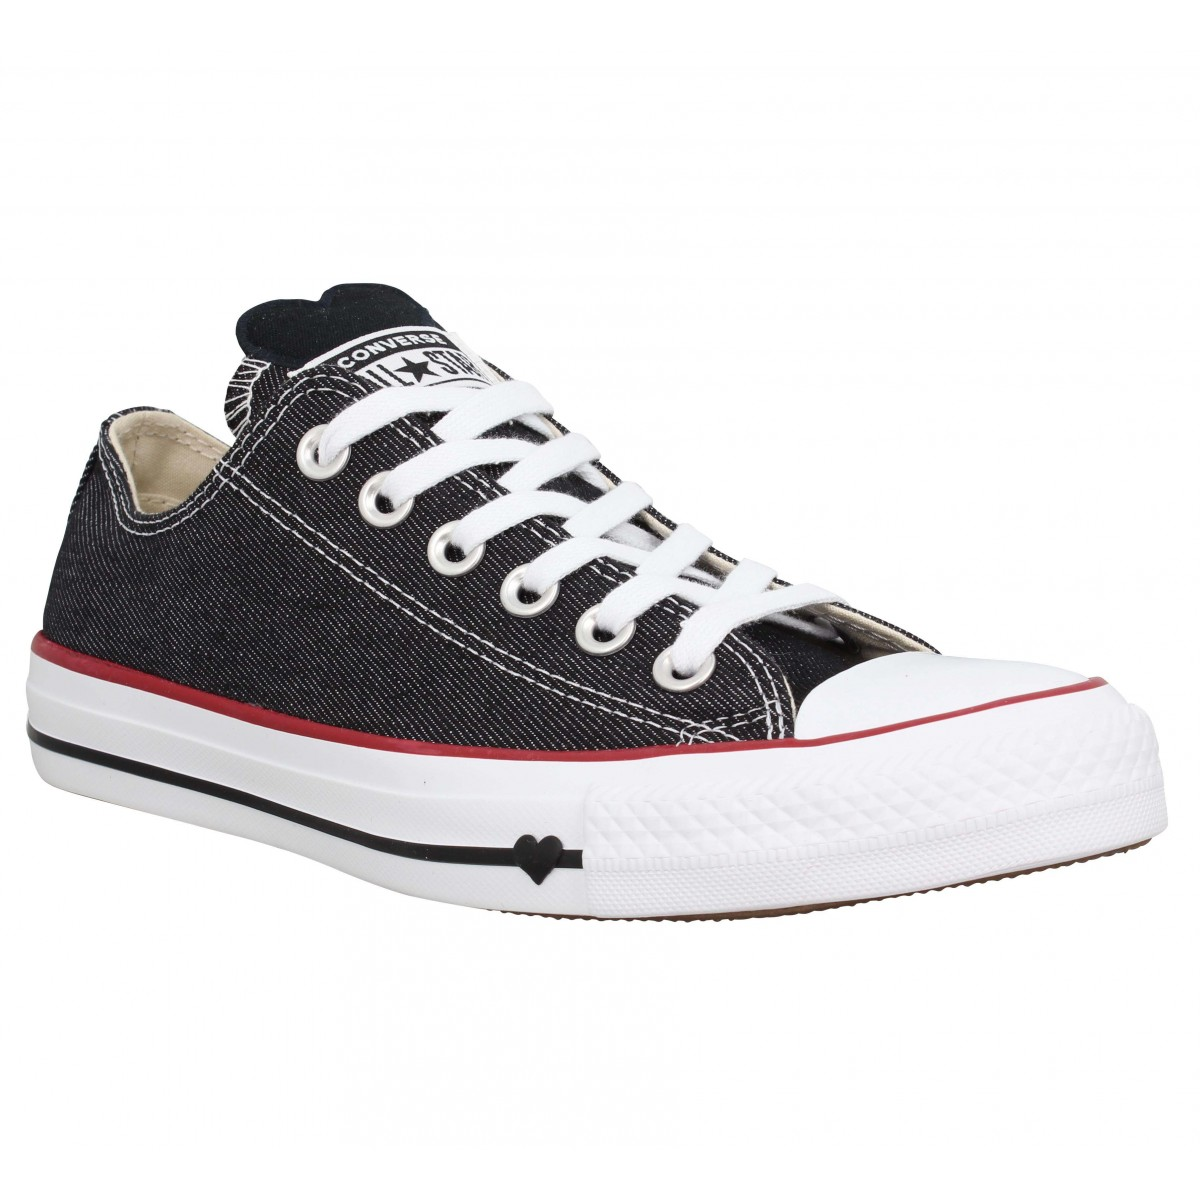 Baskets CONVERSE Chuck Taylor All Star toile Femme Jeans